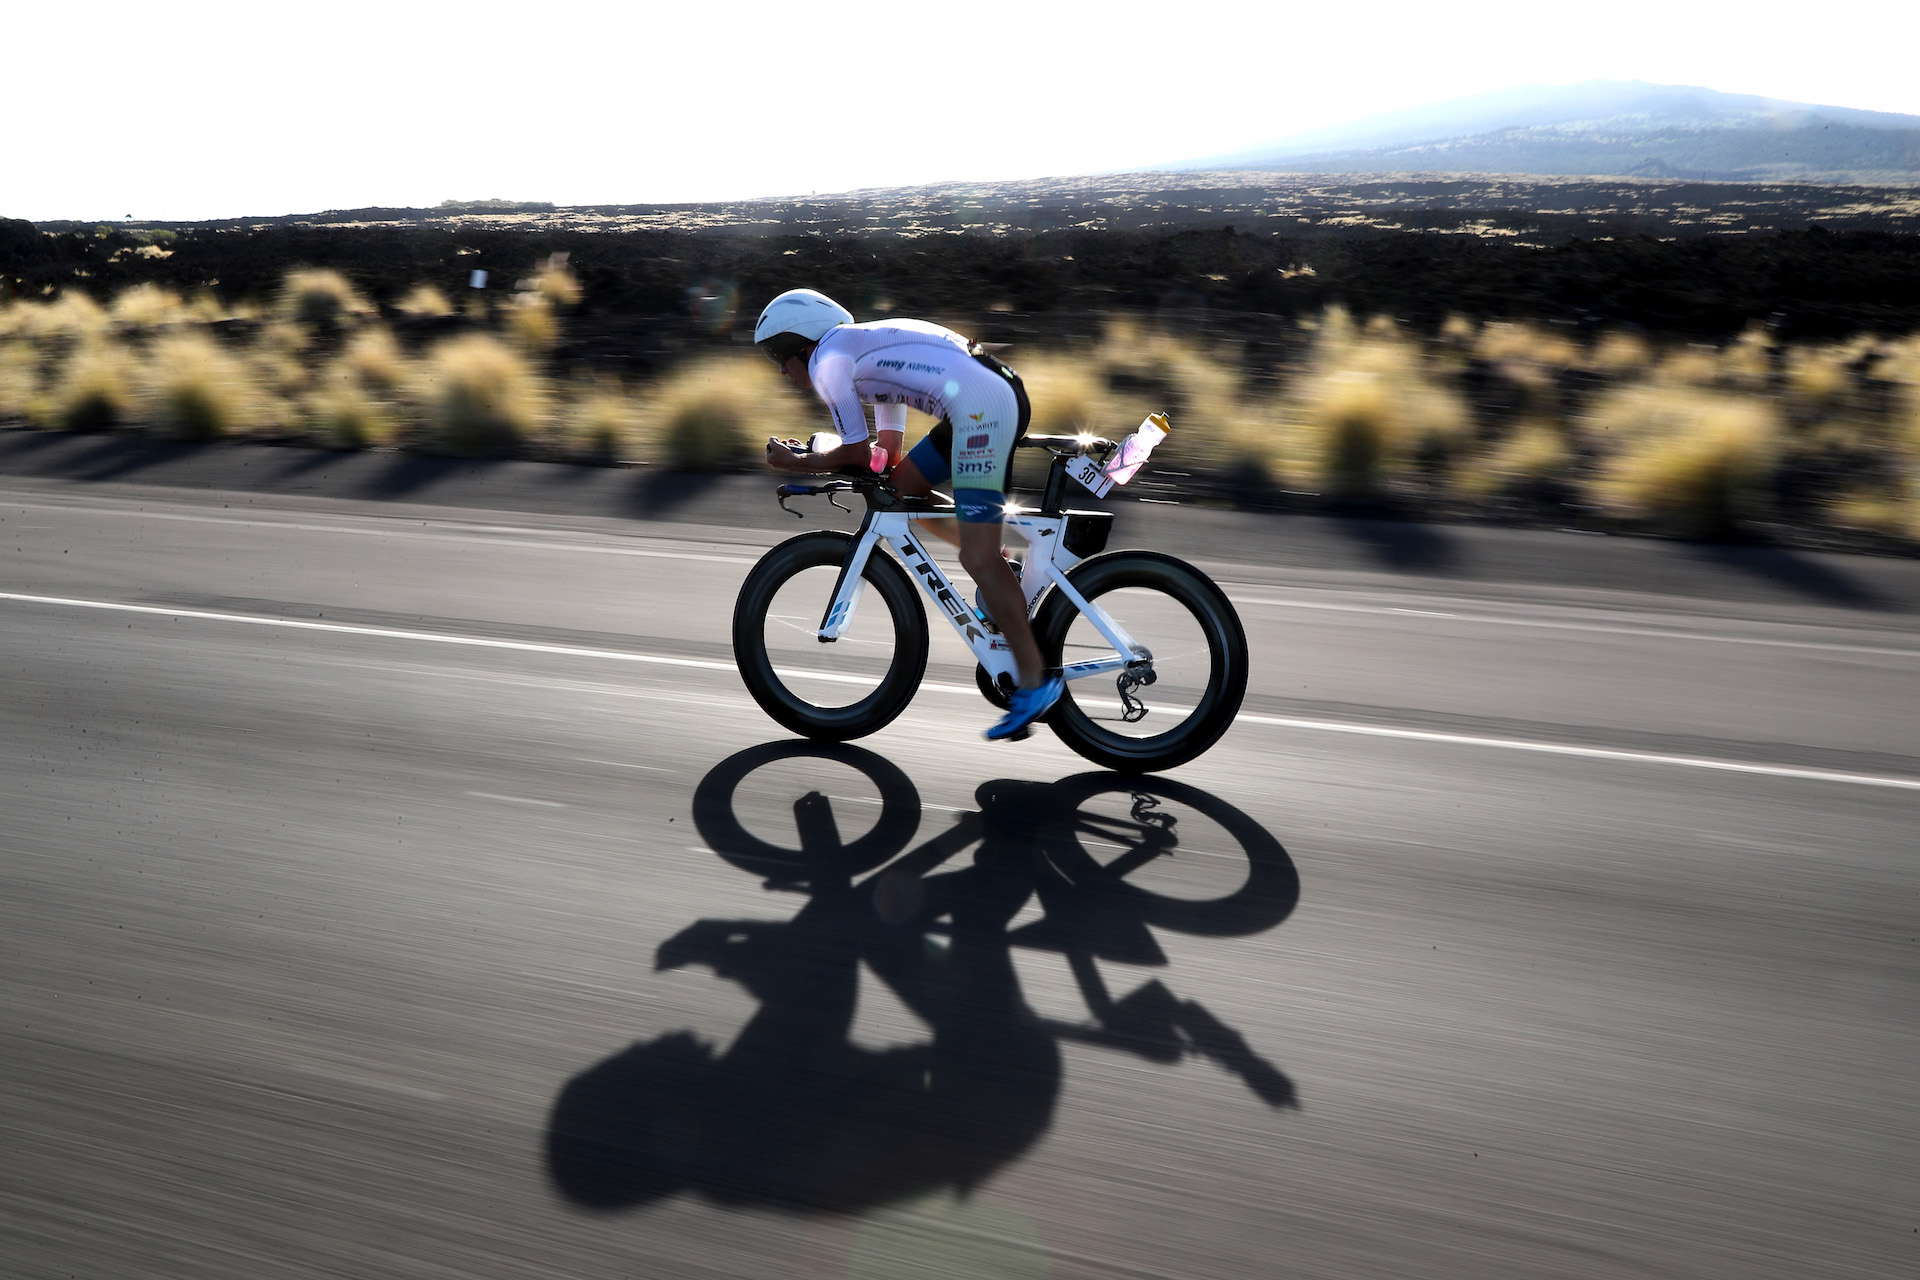 Photo by Sean M. Haffey/Getty Images for Ironman